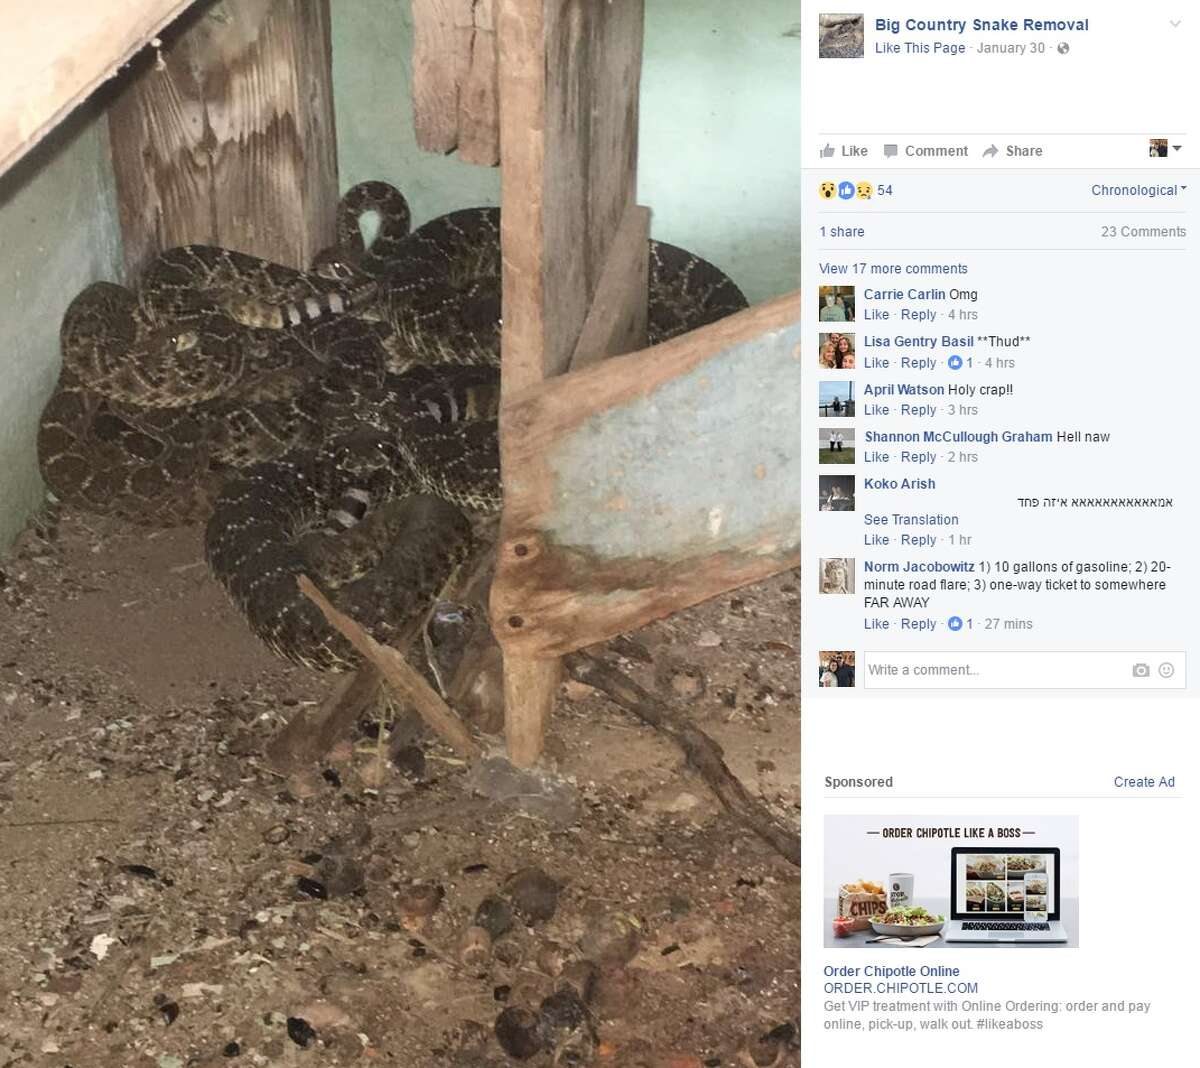 A family in Jones County had 24 rattlesnakes removed from their home in January 2017.